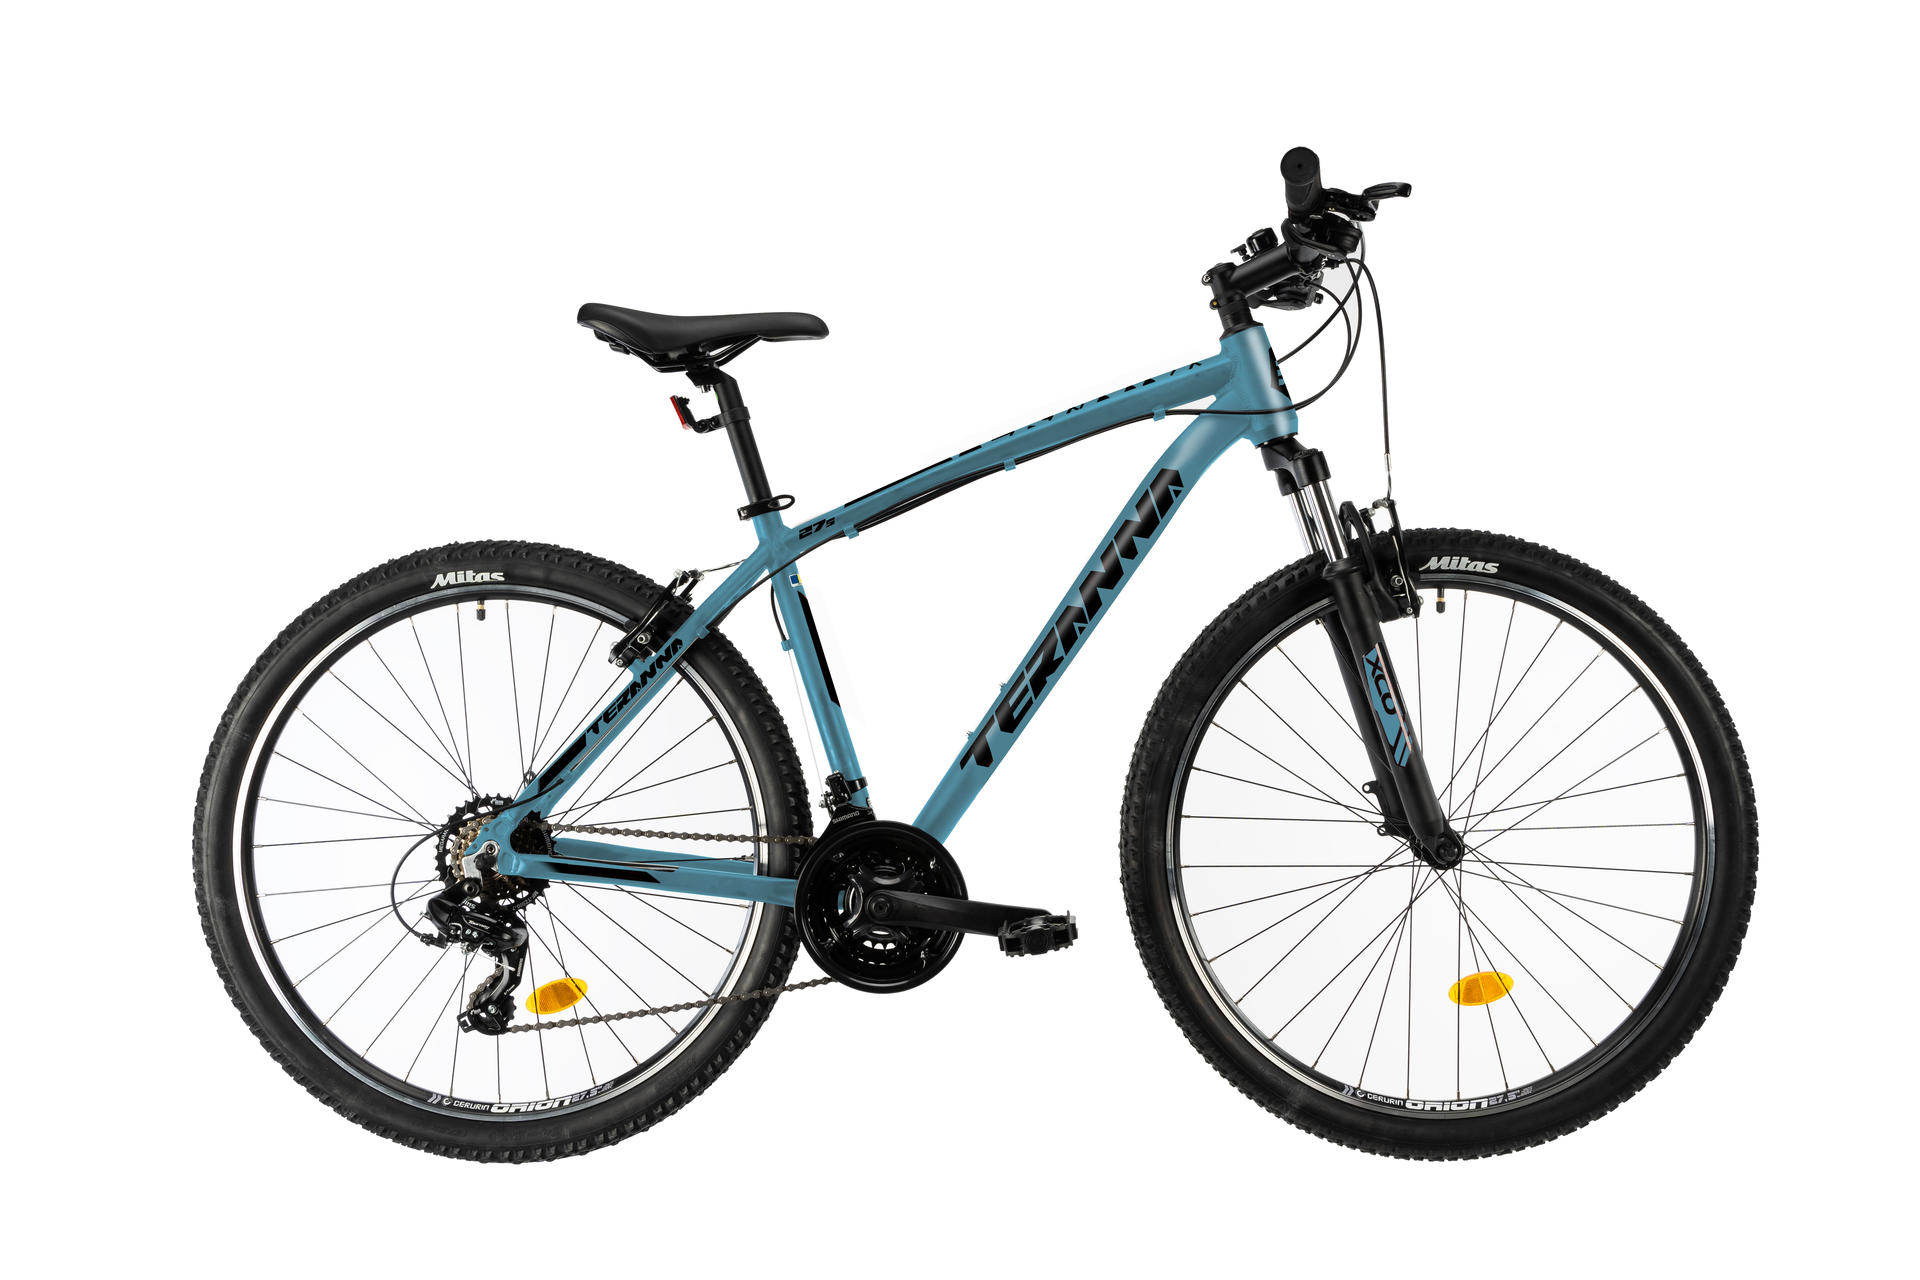 Mountain bike DHS 2723 Blue light 420mm